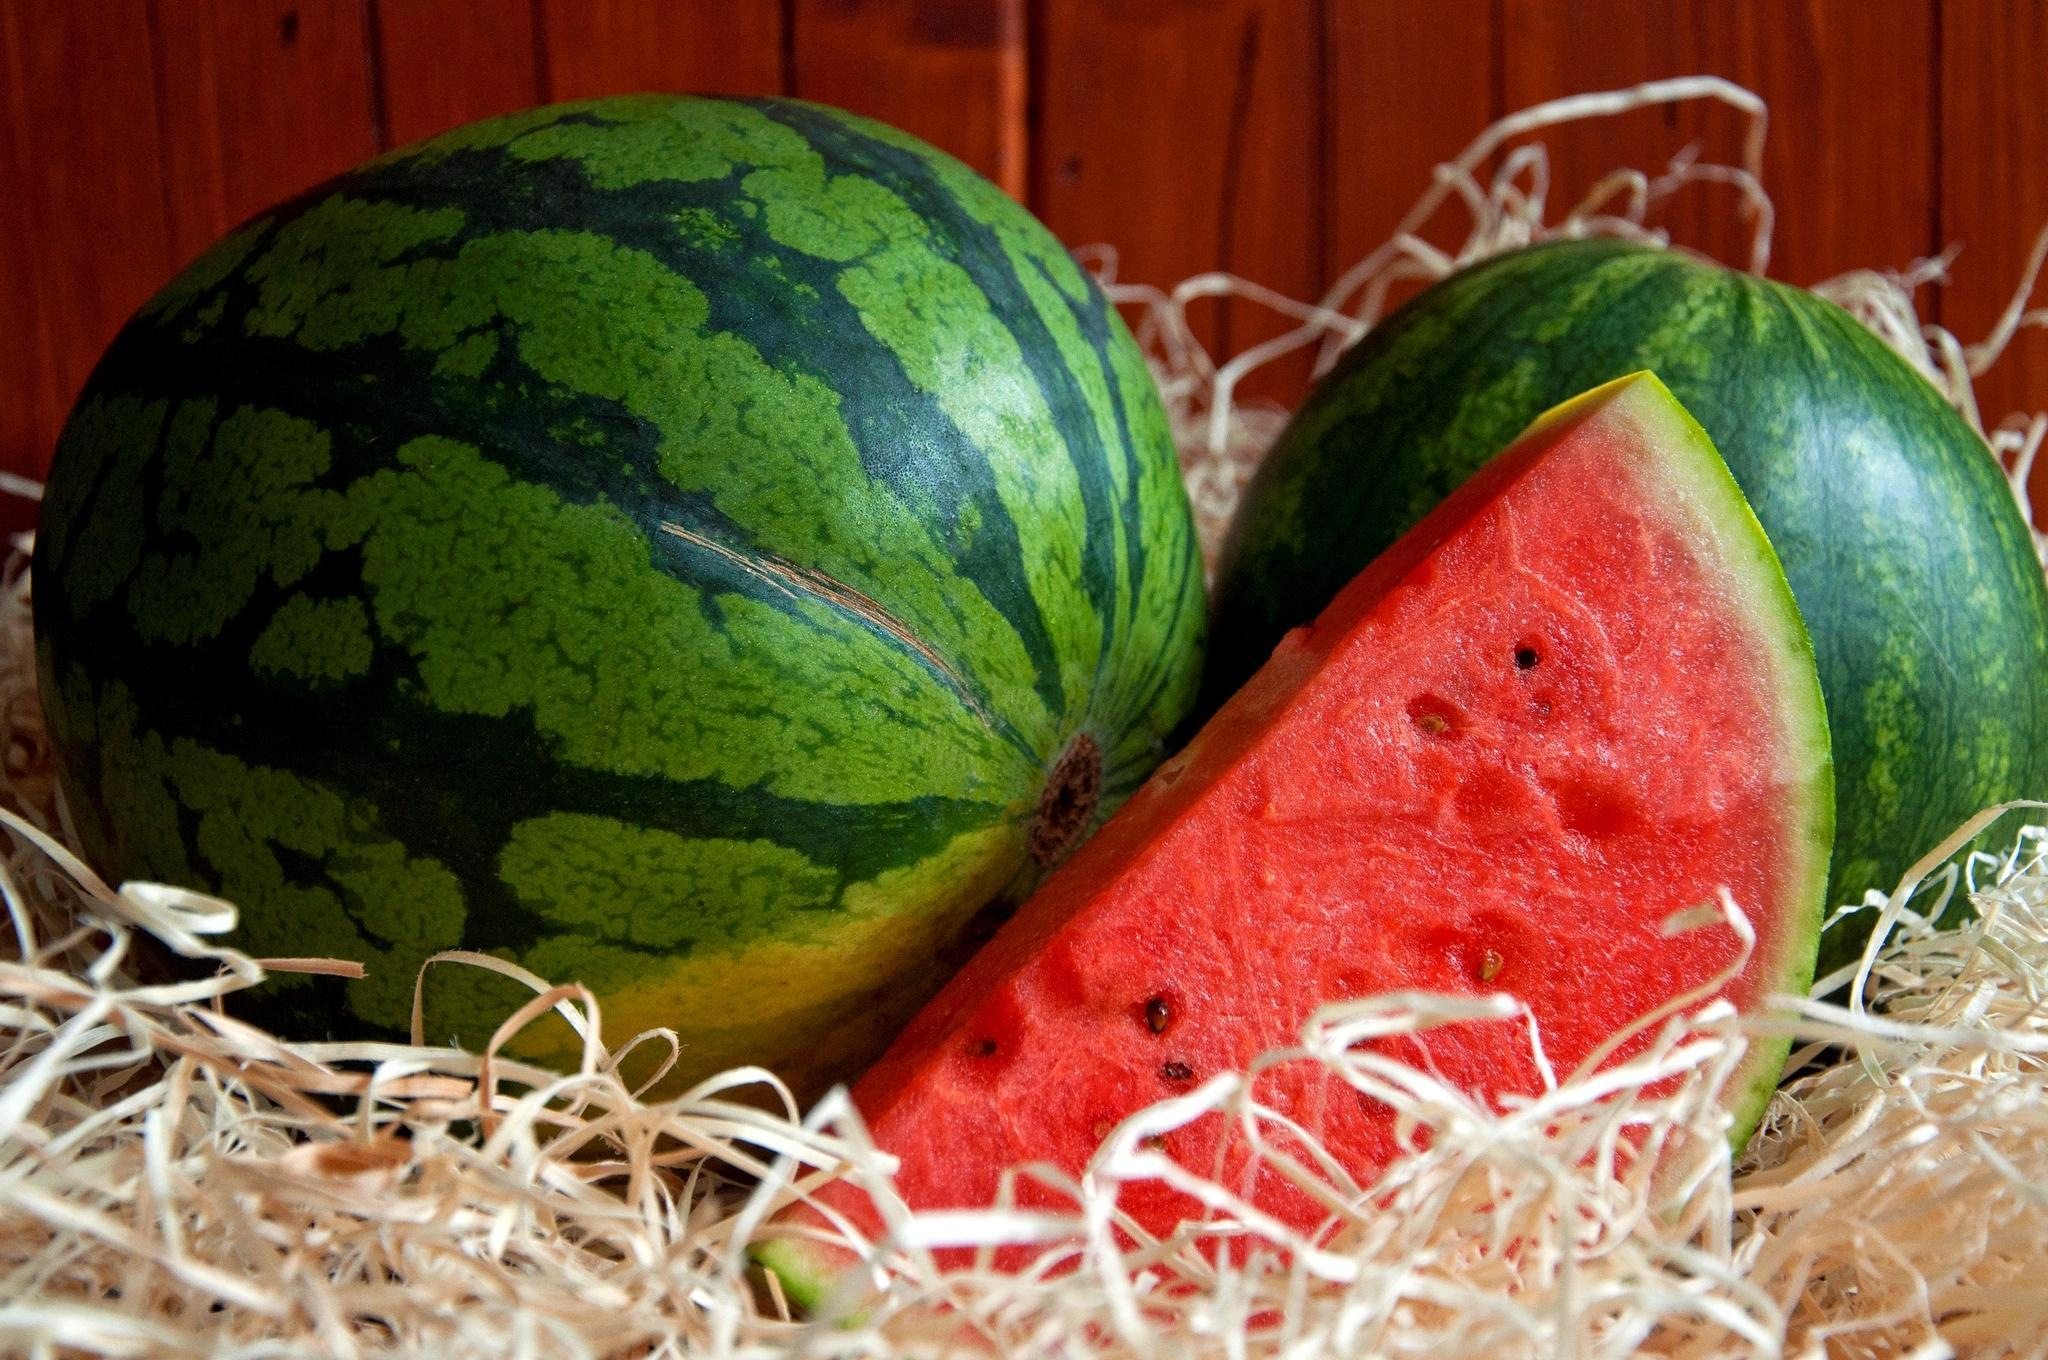 pictures of a watermelon